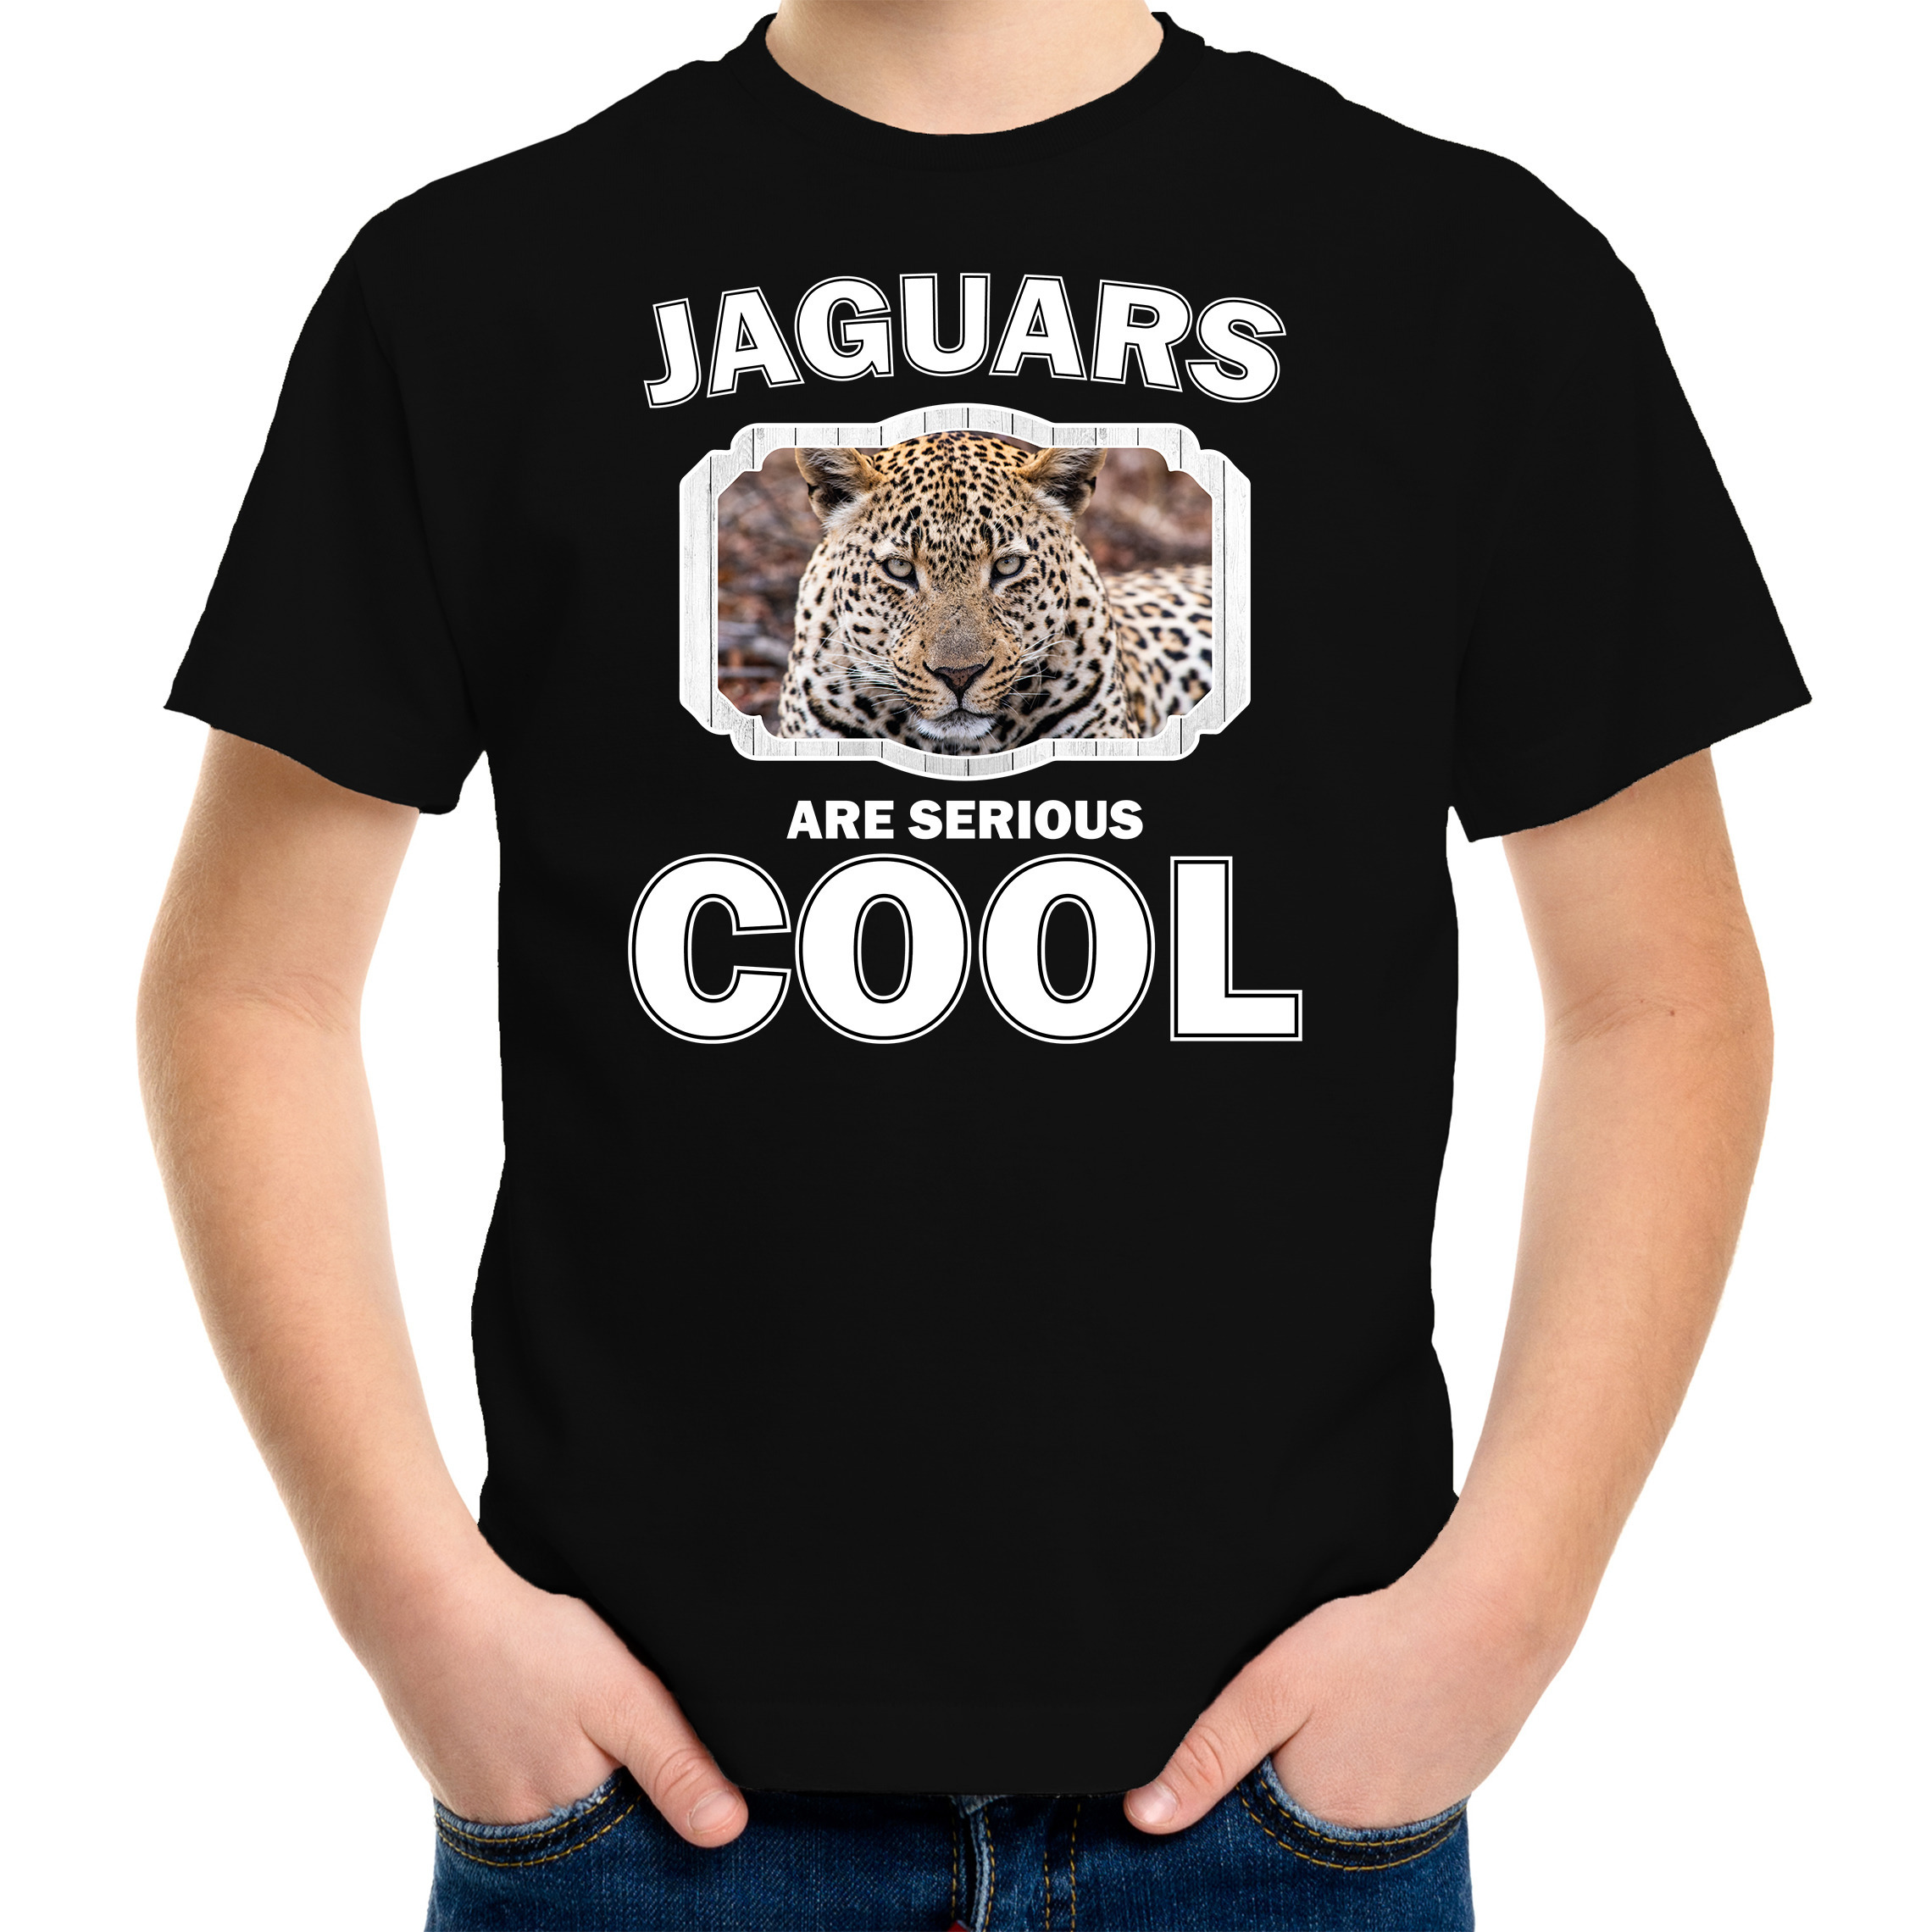 T-shirt jaguars are serious cool zwart kinderen - jaguars/ jaguar shirt